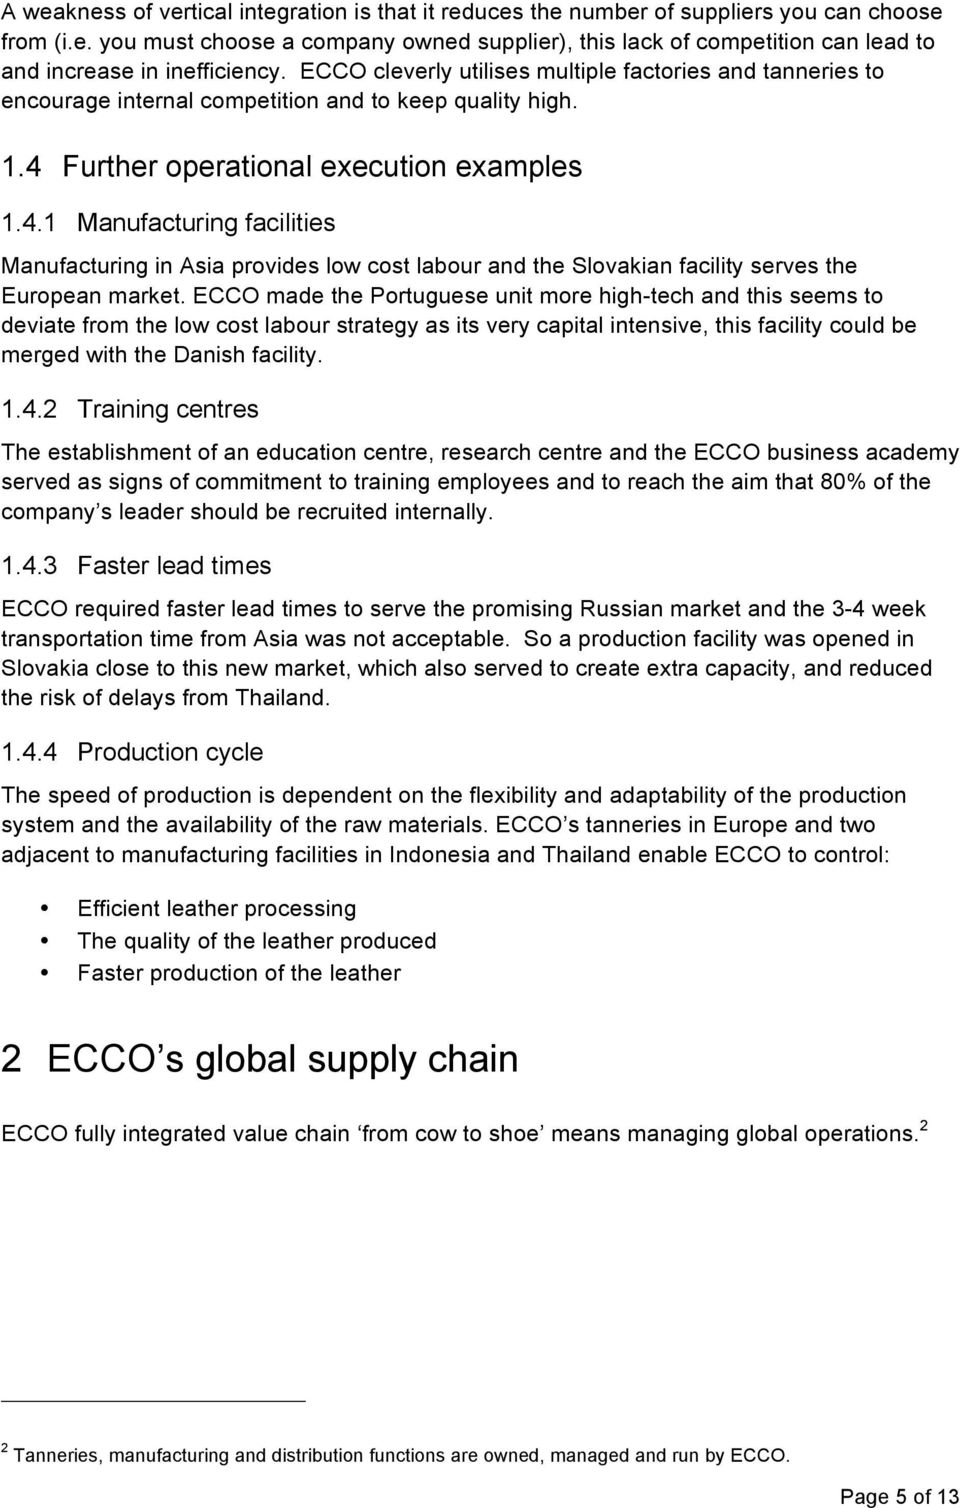 operations management coursework ecco shoes global value chain pdf further operational execution examples 1 4 1 manufacturing facilities manufacturing in asia provides low cost labour